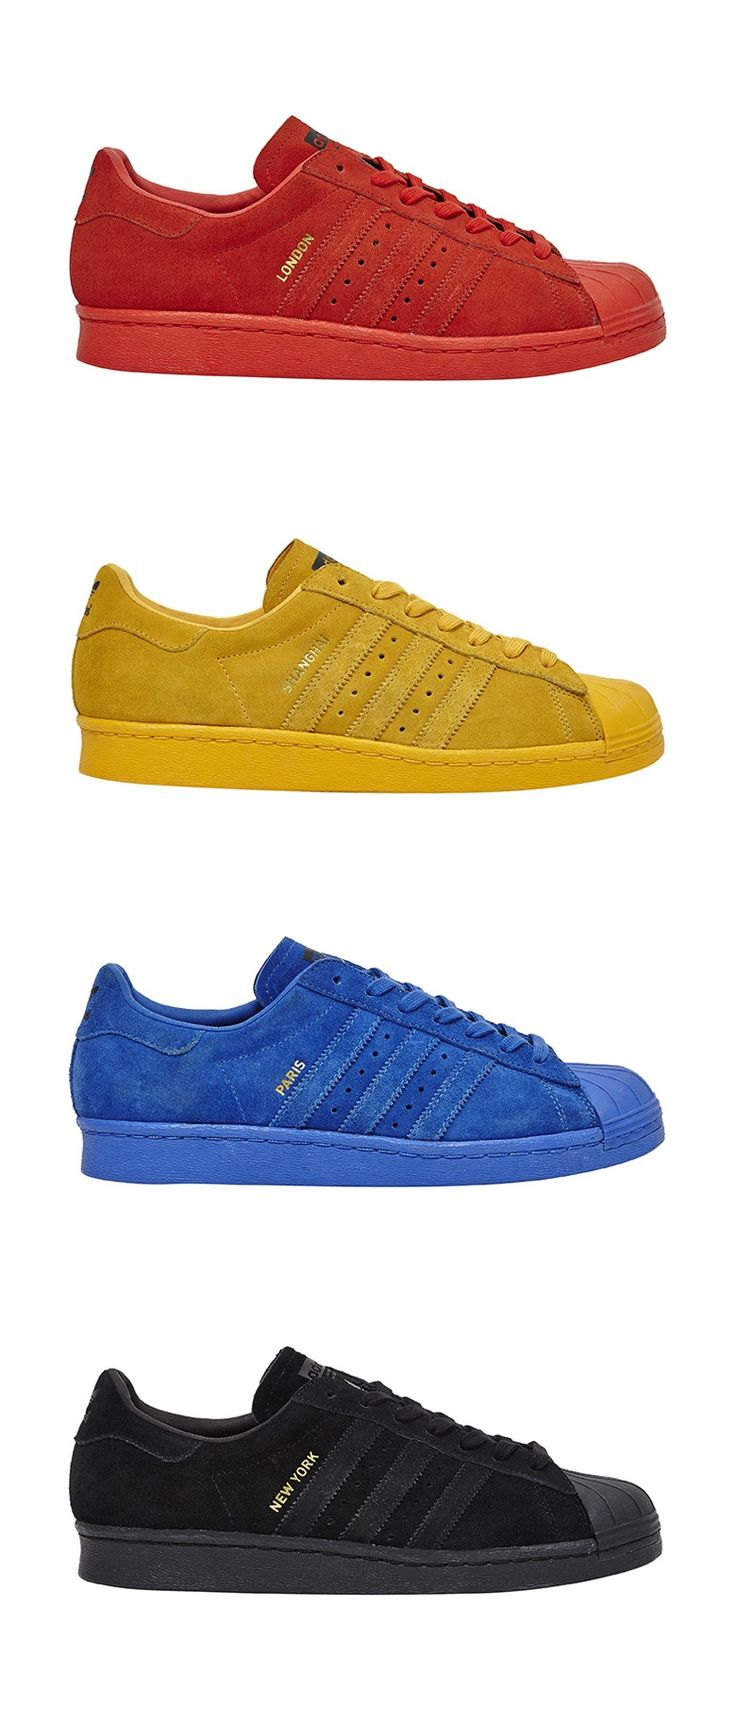 adidas superstar price at studio 88